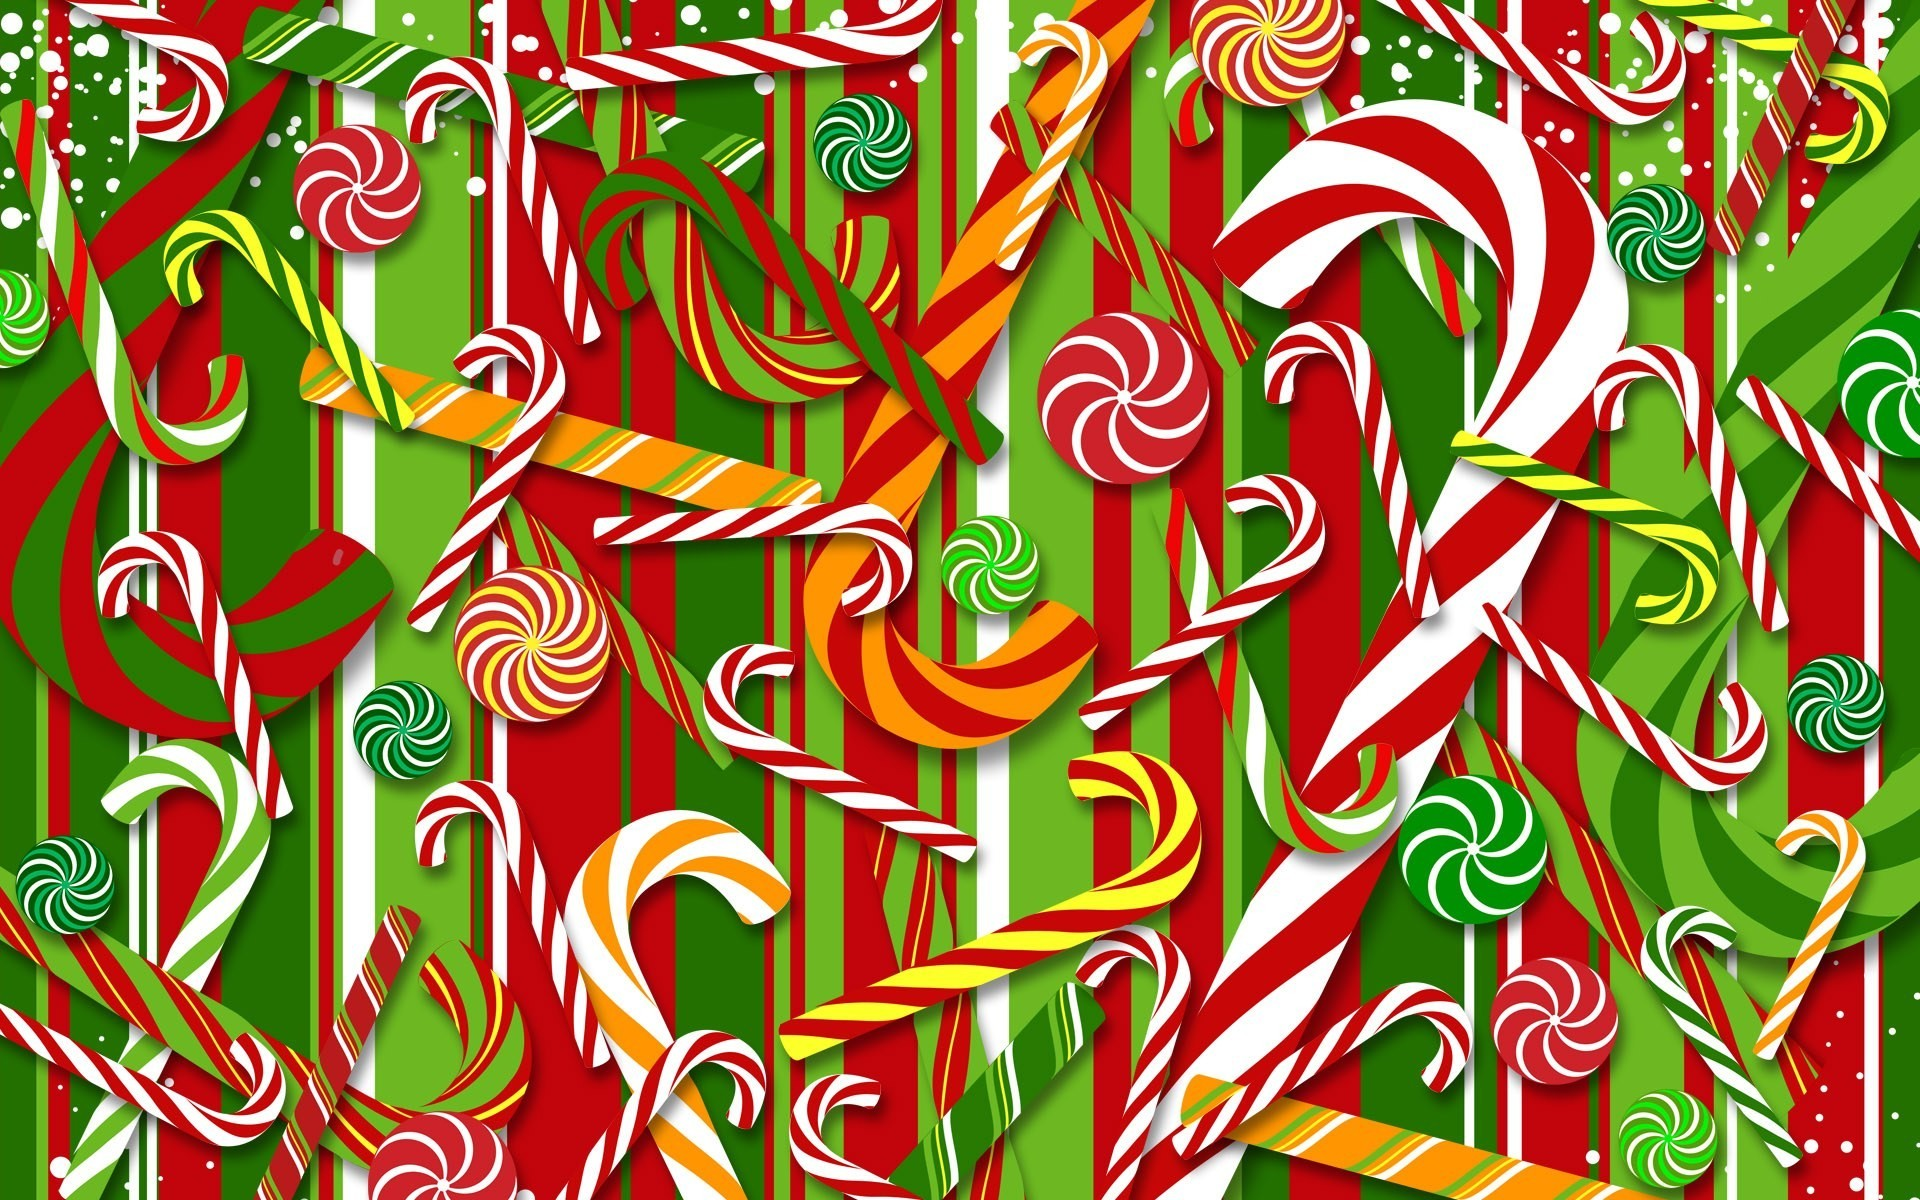 Candy Cane Background - WallpaperSafari